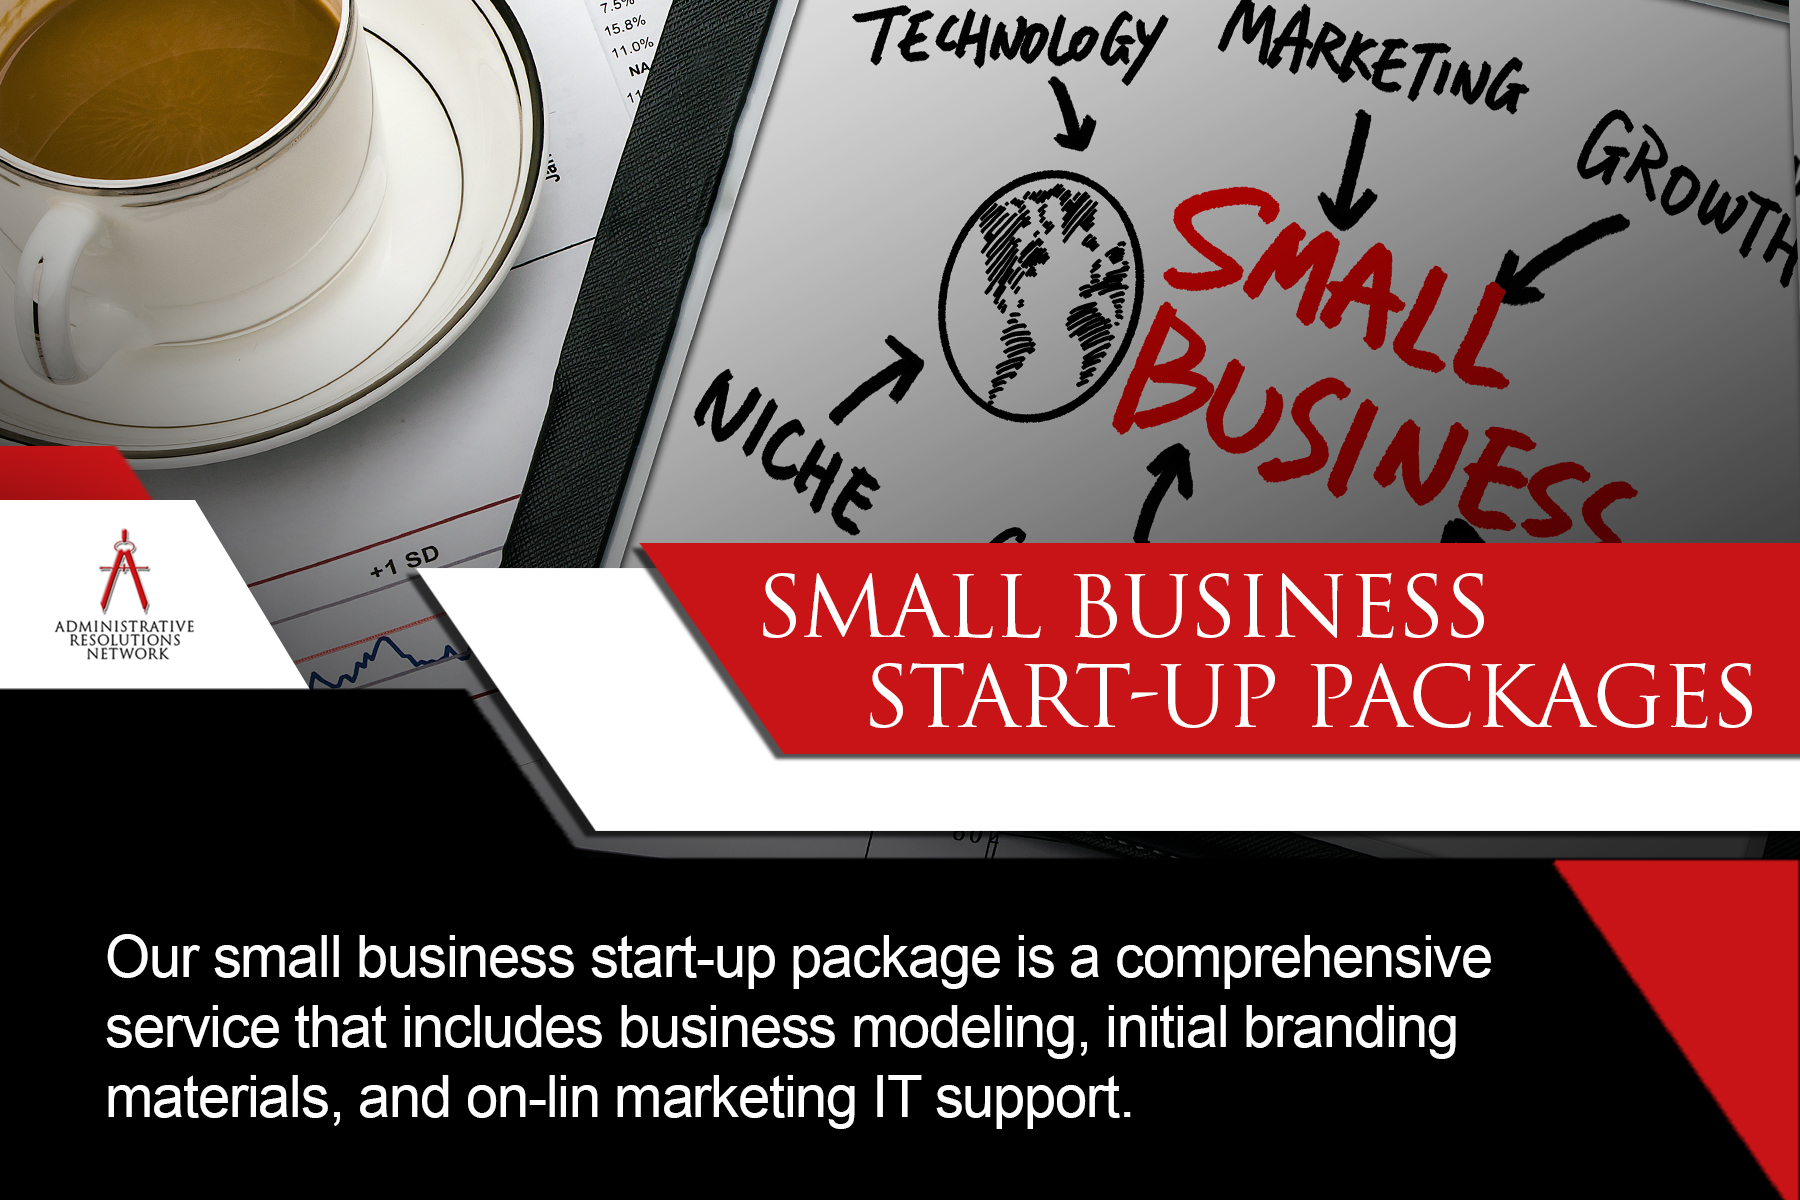 SMALL BUSINESS START-UP PACKAGES.jpg